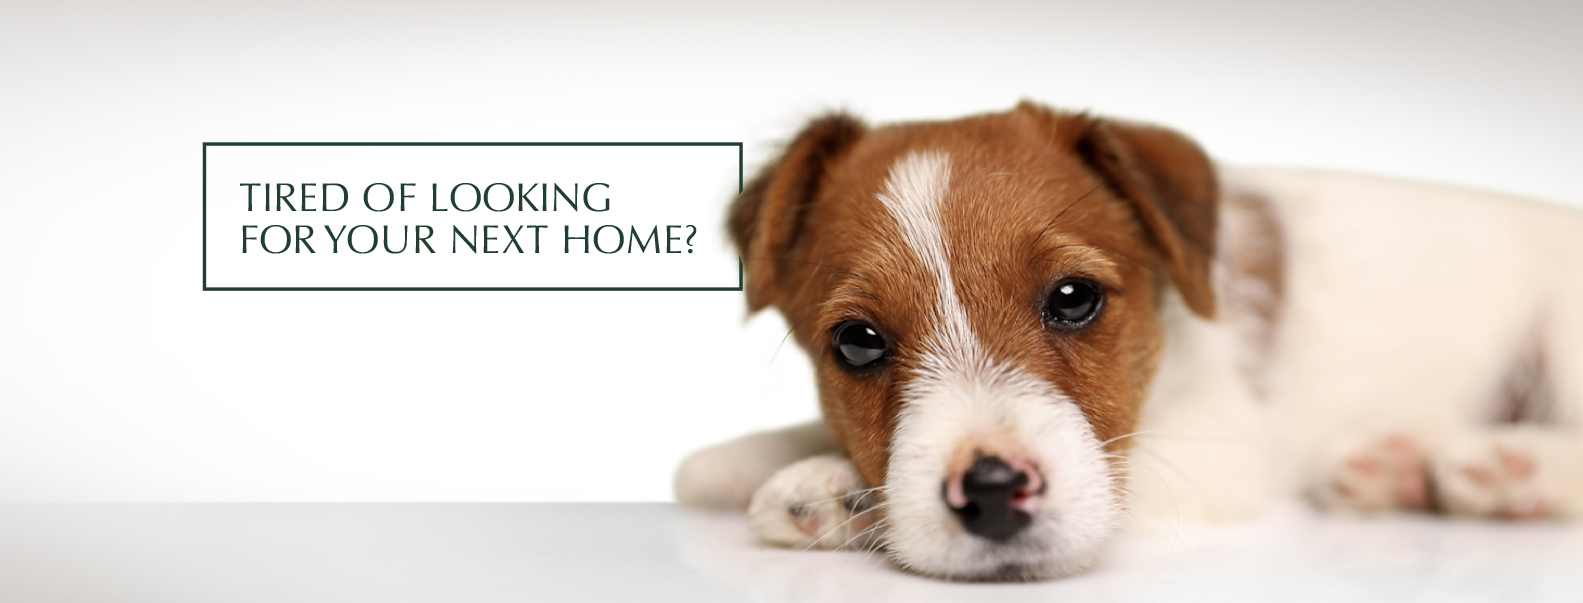 Tired of looking for your next home?